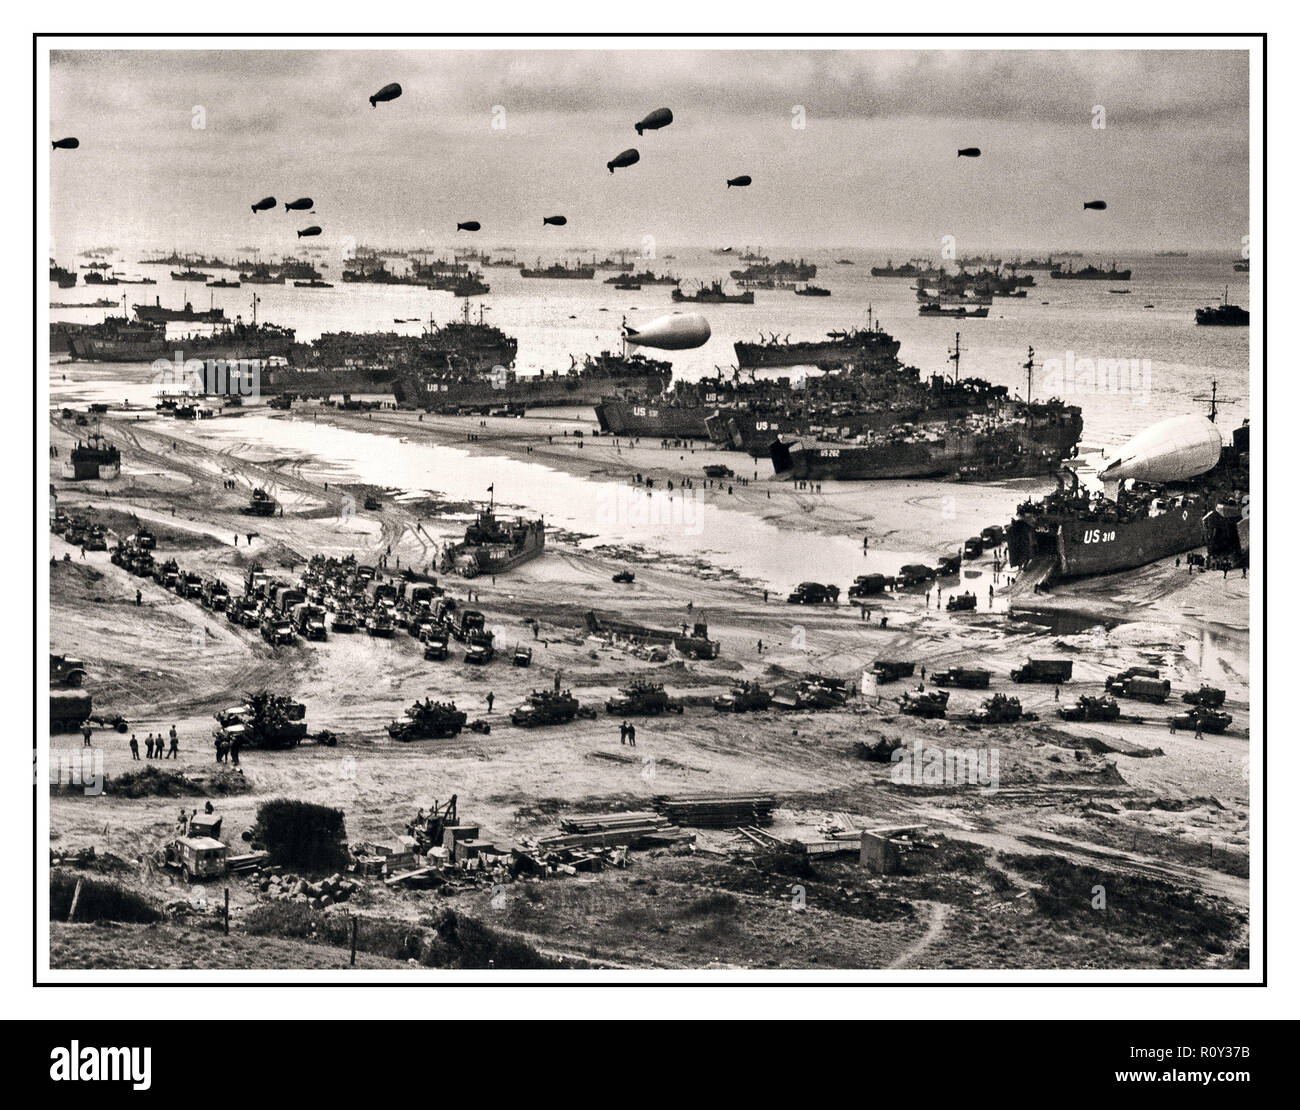 OMAHA BEACH D-Day Normandy WW2 B&W image D Day Plus 1 LCT landing craft tank with barrage balloons afloat, unloading supplies on Omaha for the break-out from Normandy. June 1944 Stock Photo